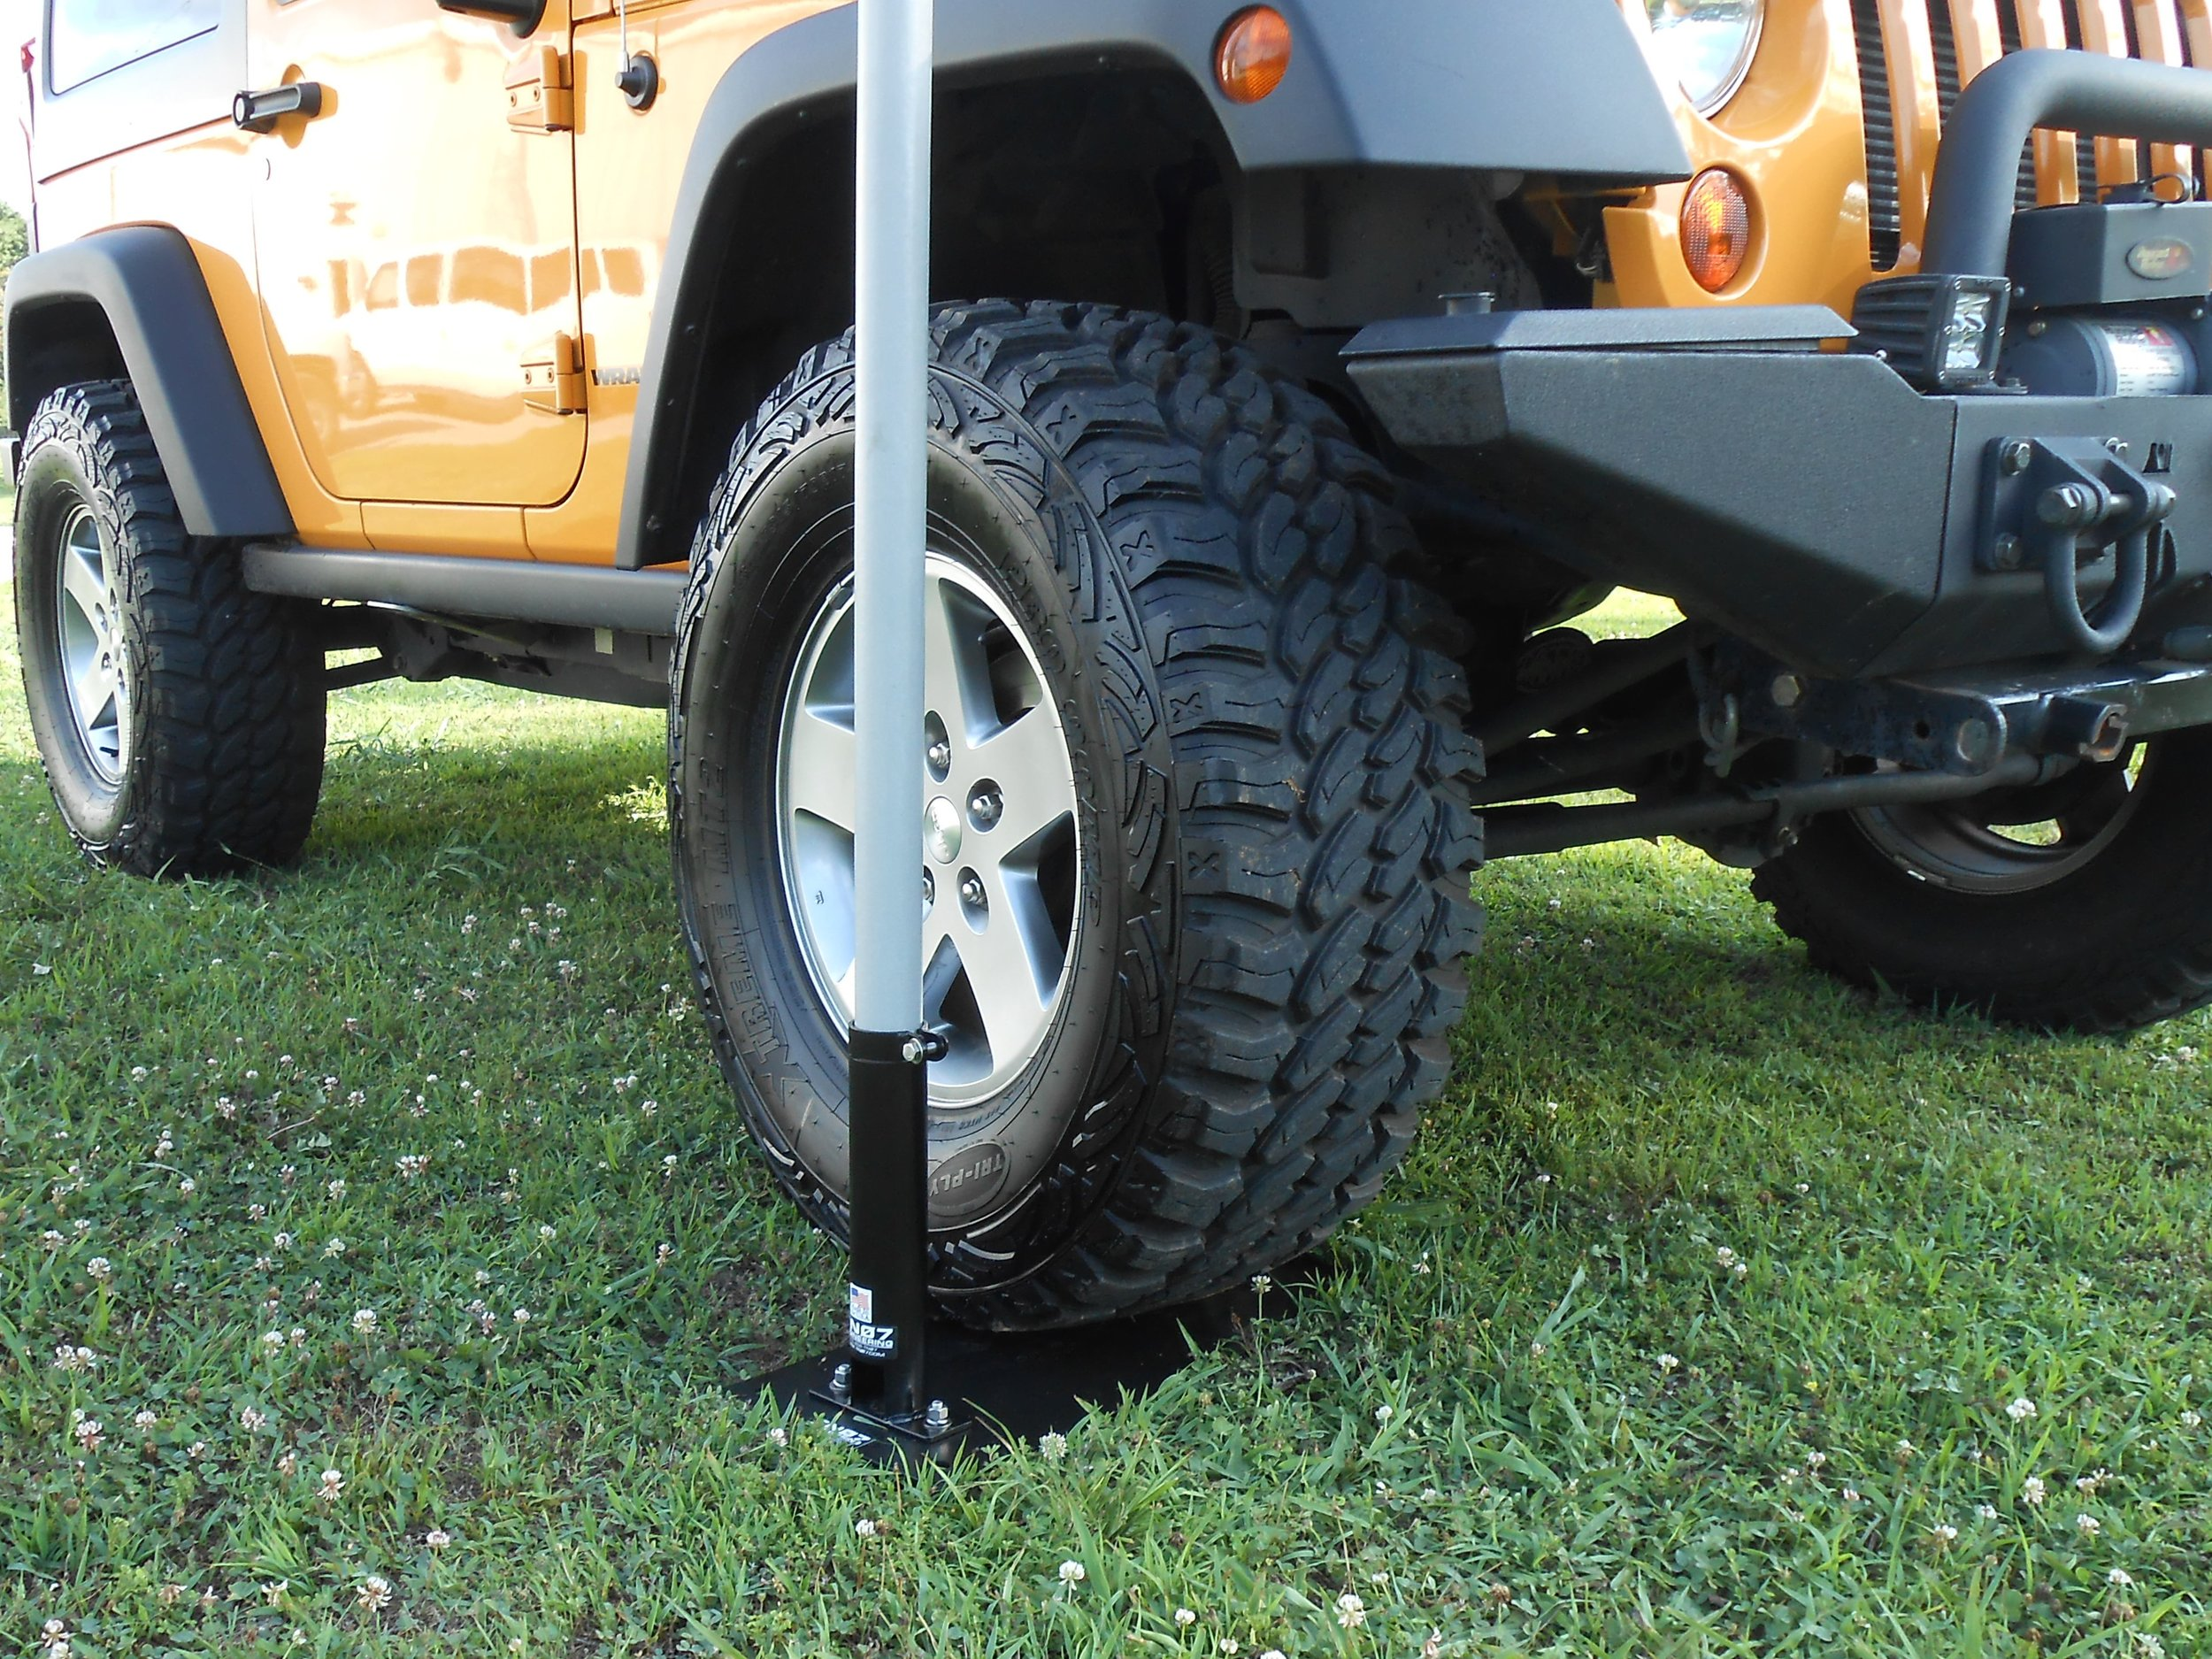 Yellow Jeep - drive on mount - close up.JPG